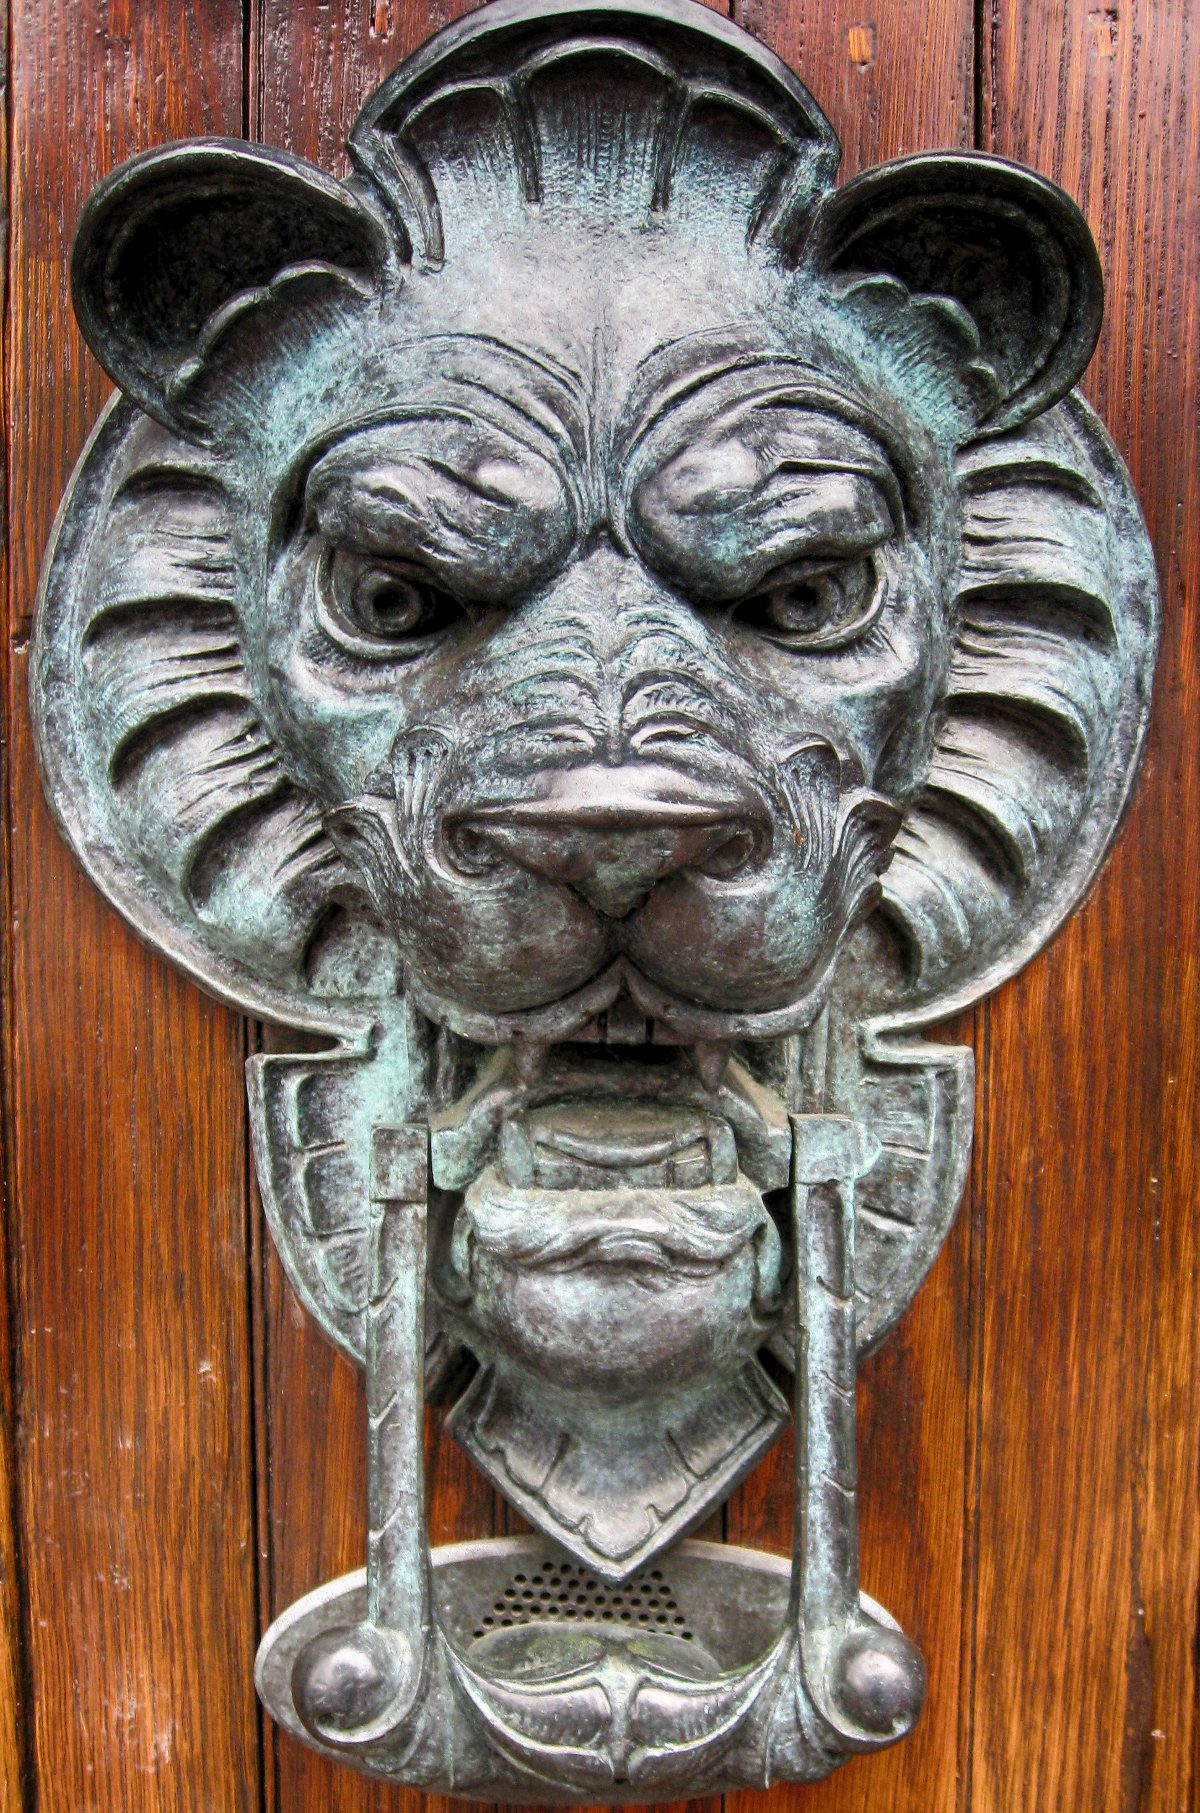 Merveilleux ... 1164 Lionu0027s Head Door Knocker In Beacon Hill, Boston